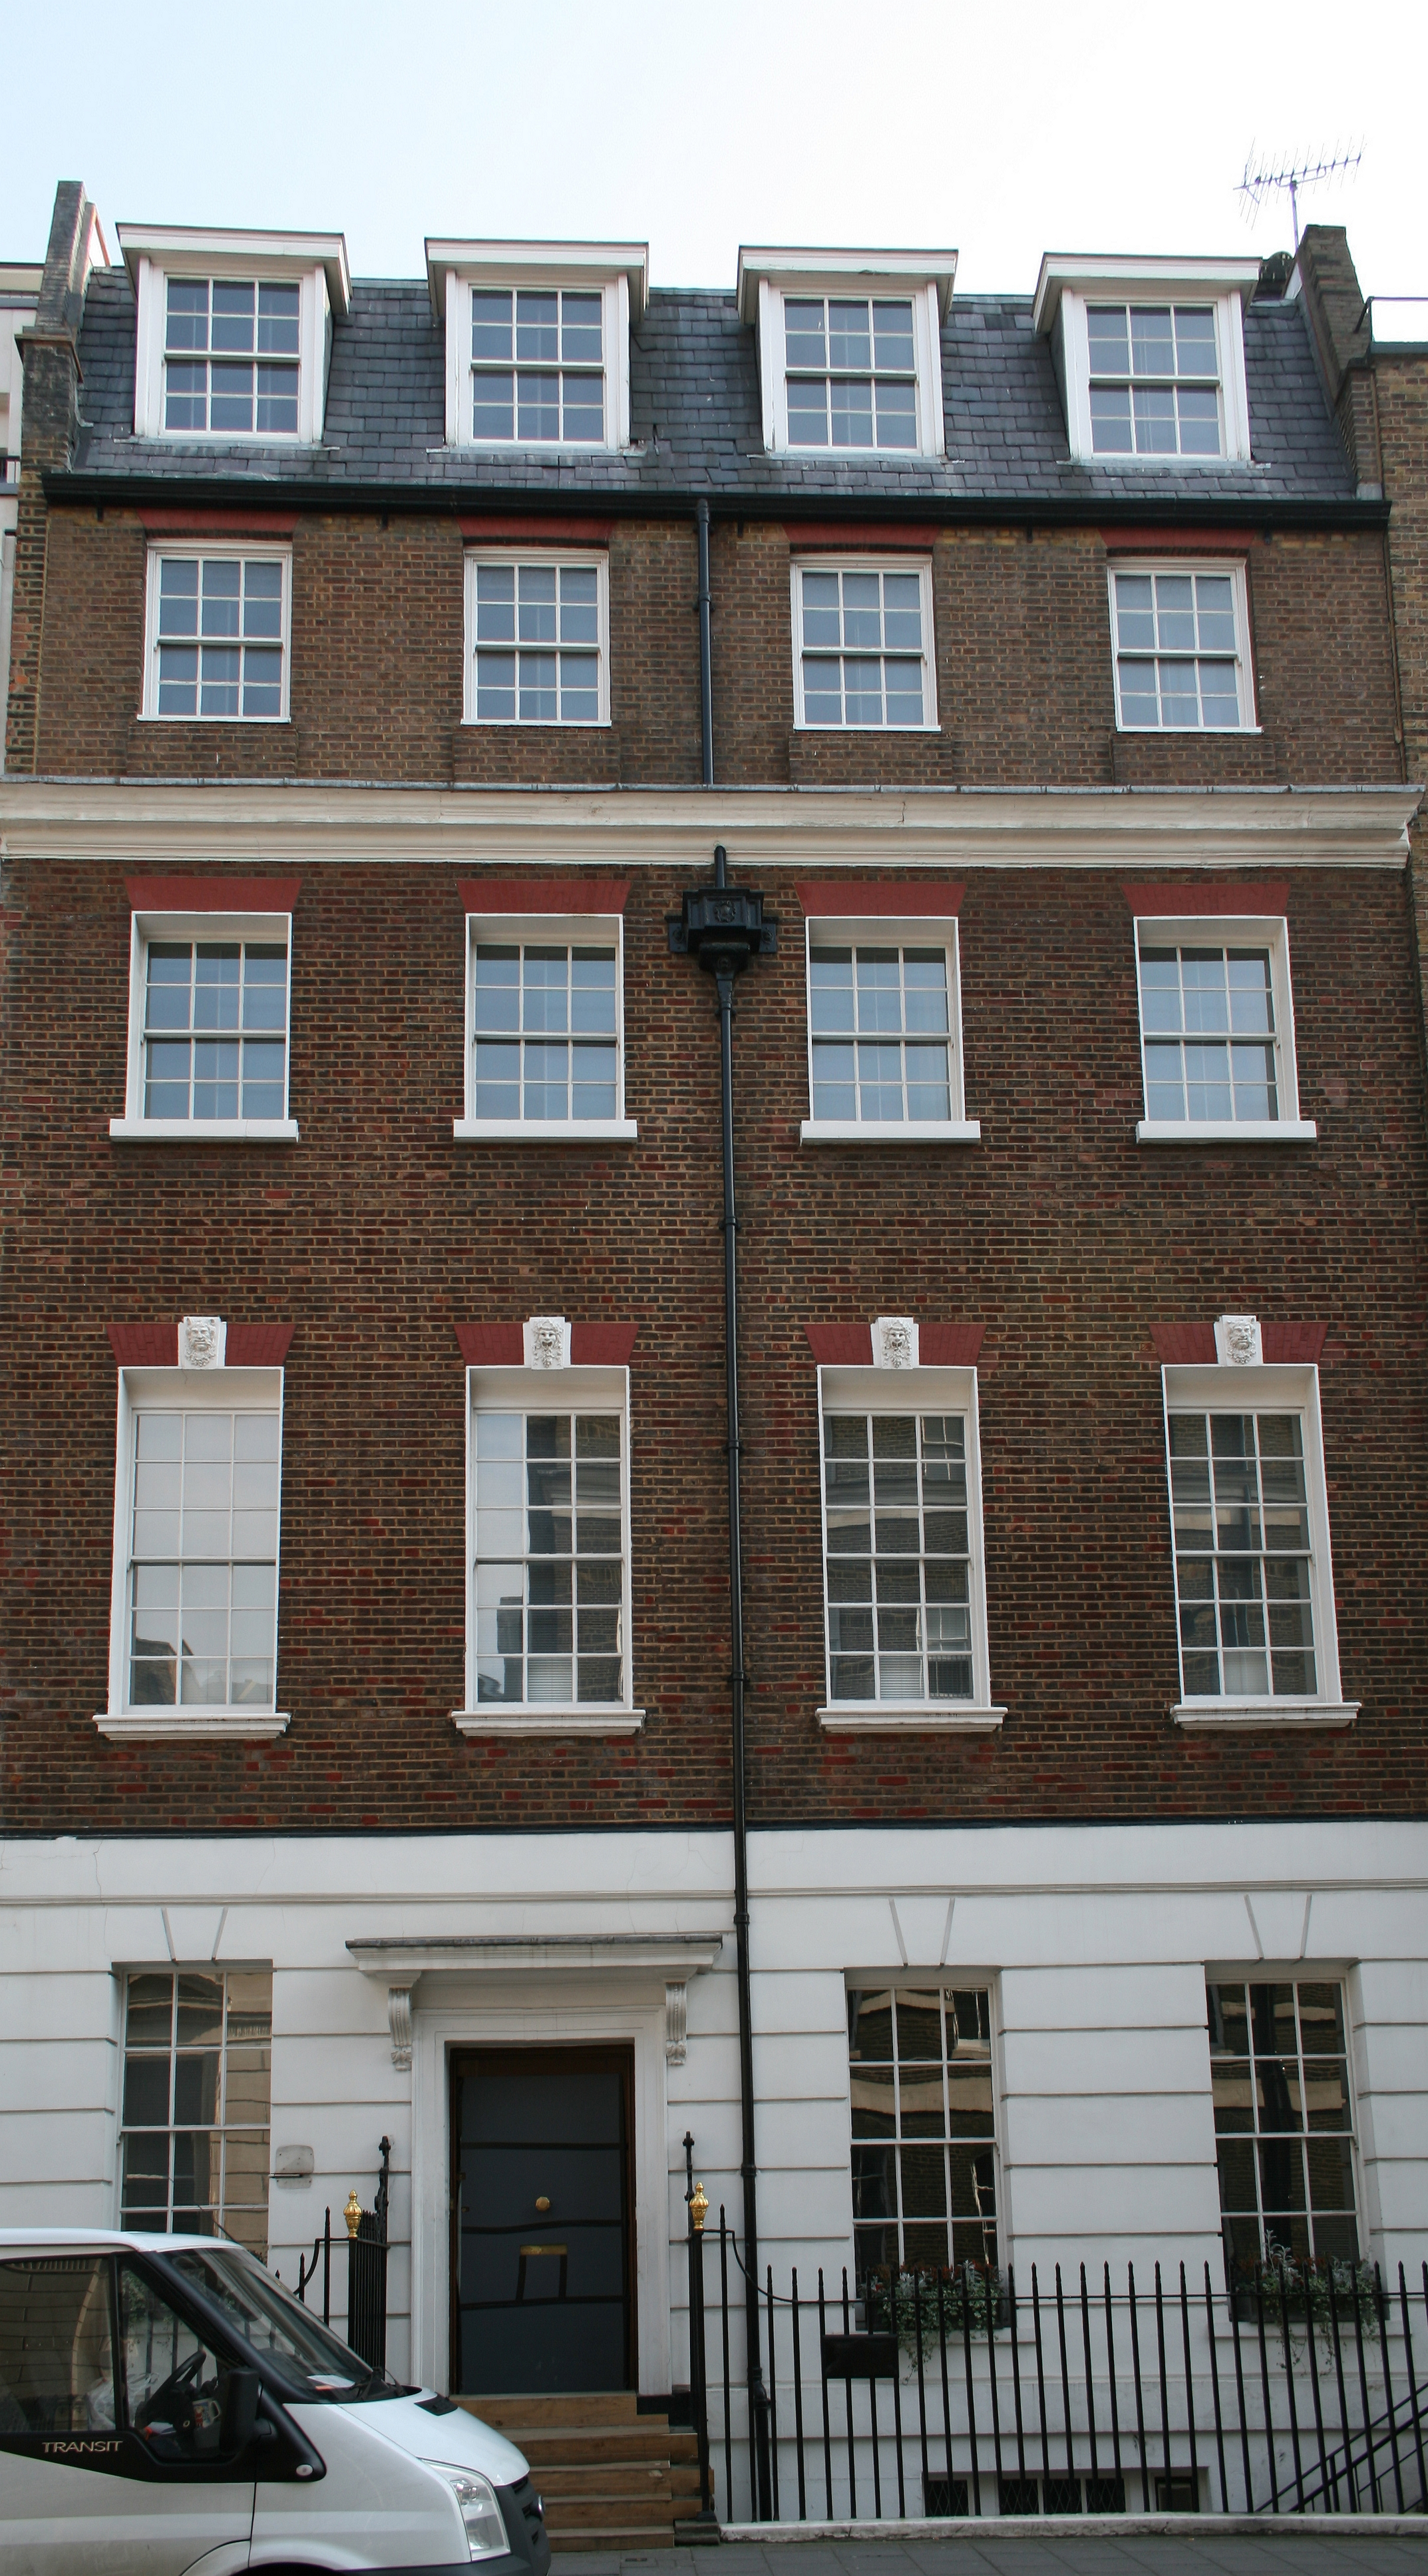 Apple Corps building at 3 Savile Row, London, site of the Let It Be rooftop concert. Photo taken on April 1, 2007.